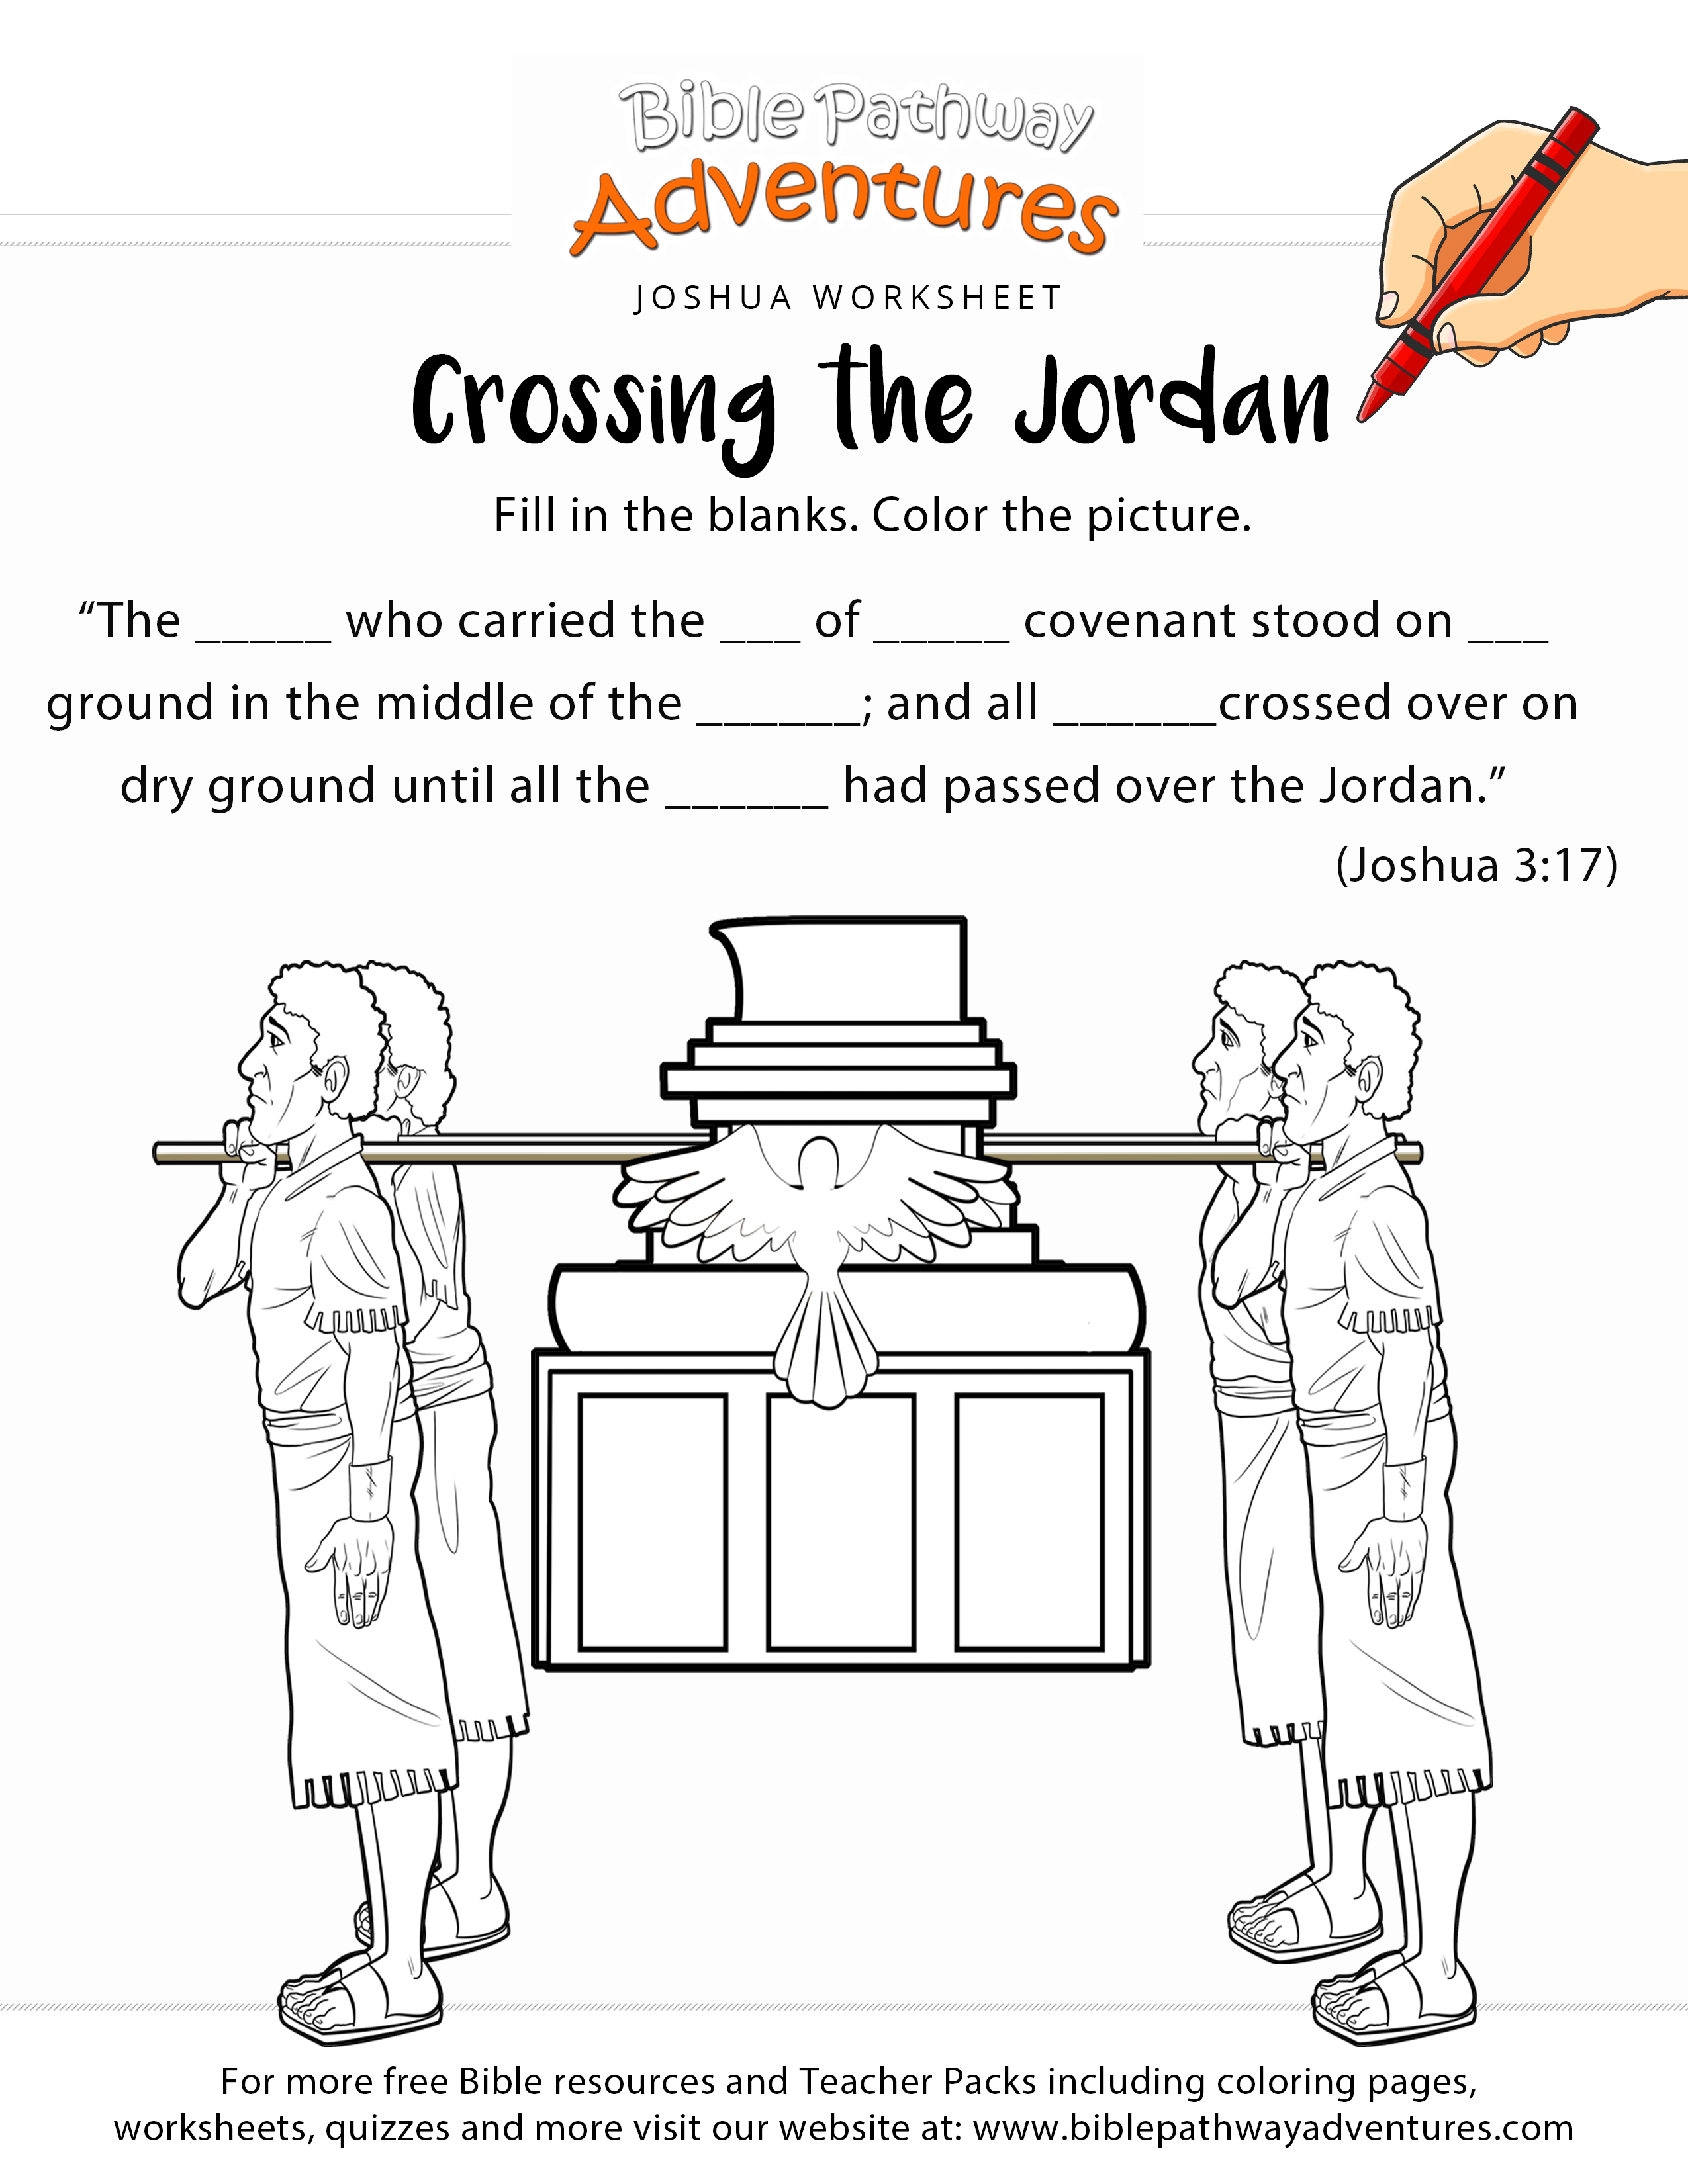 Israelites Cross The Jordan River Coloring Page Click Joshua And Pages To View Printable Version Or